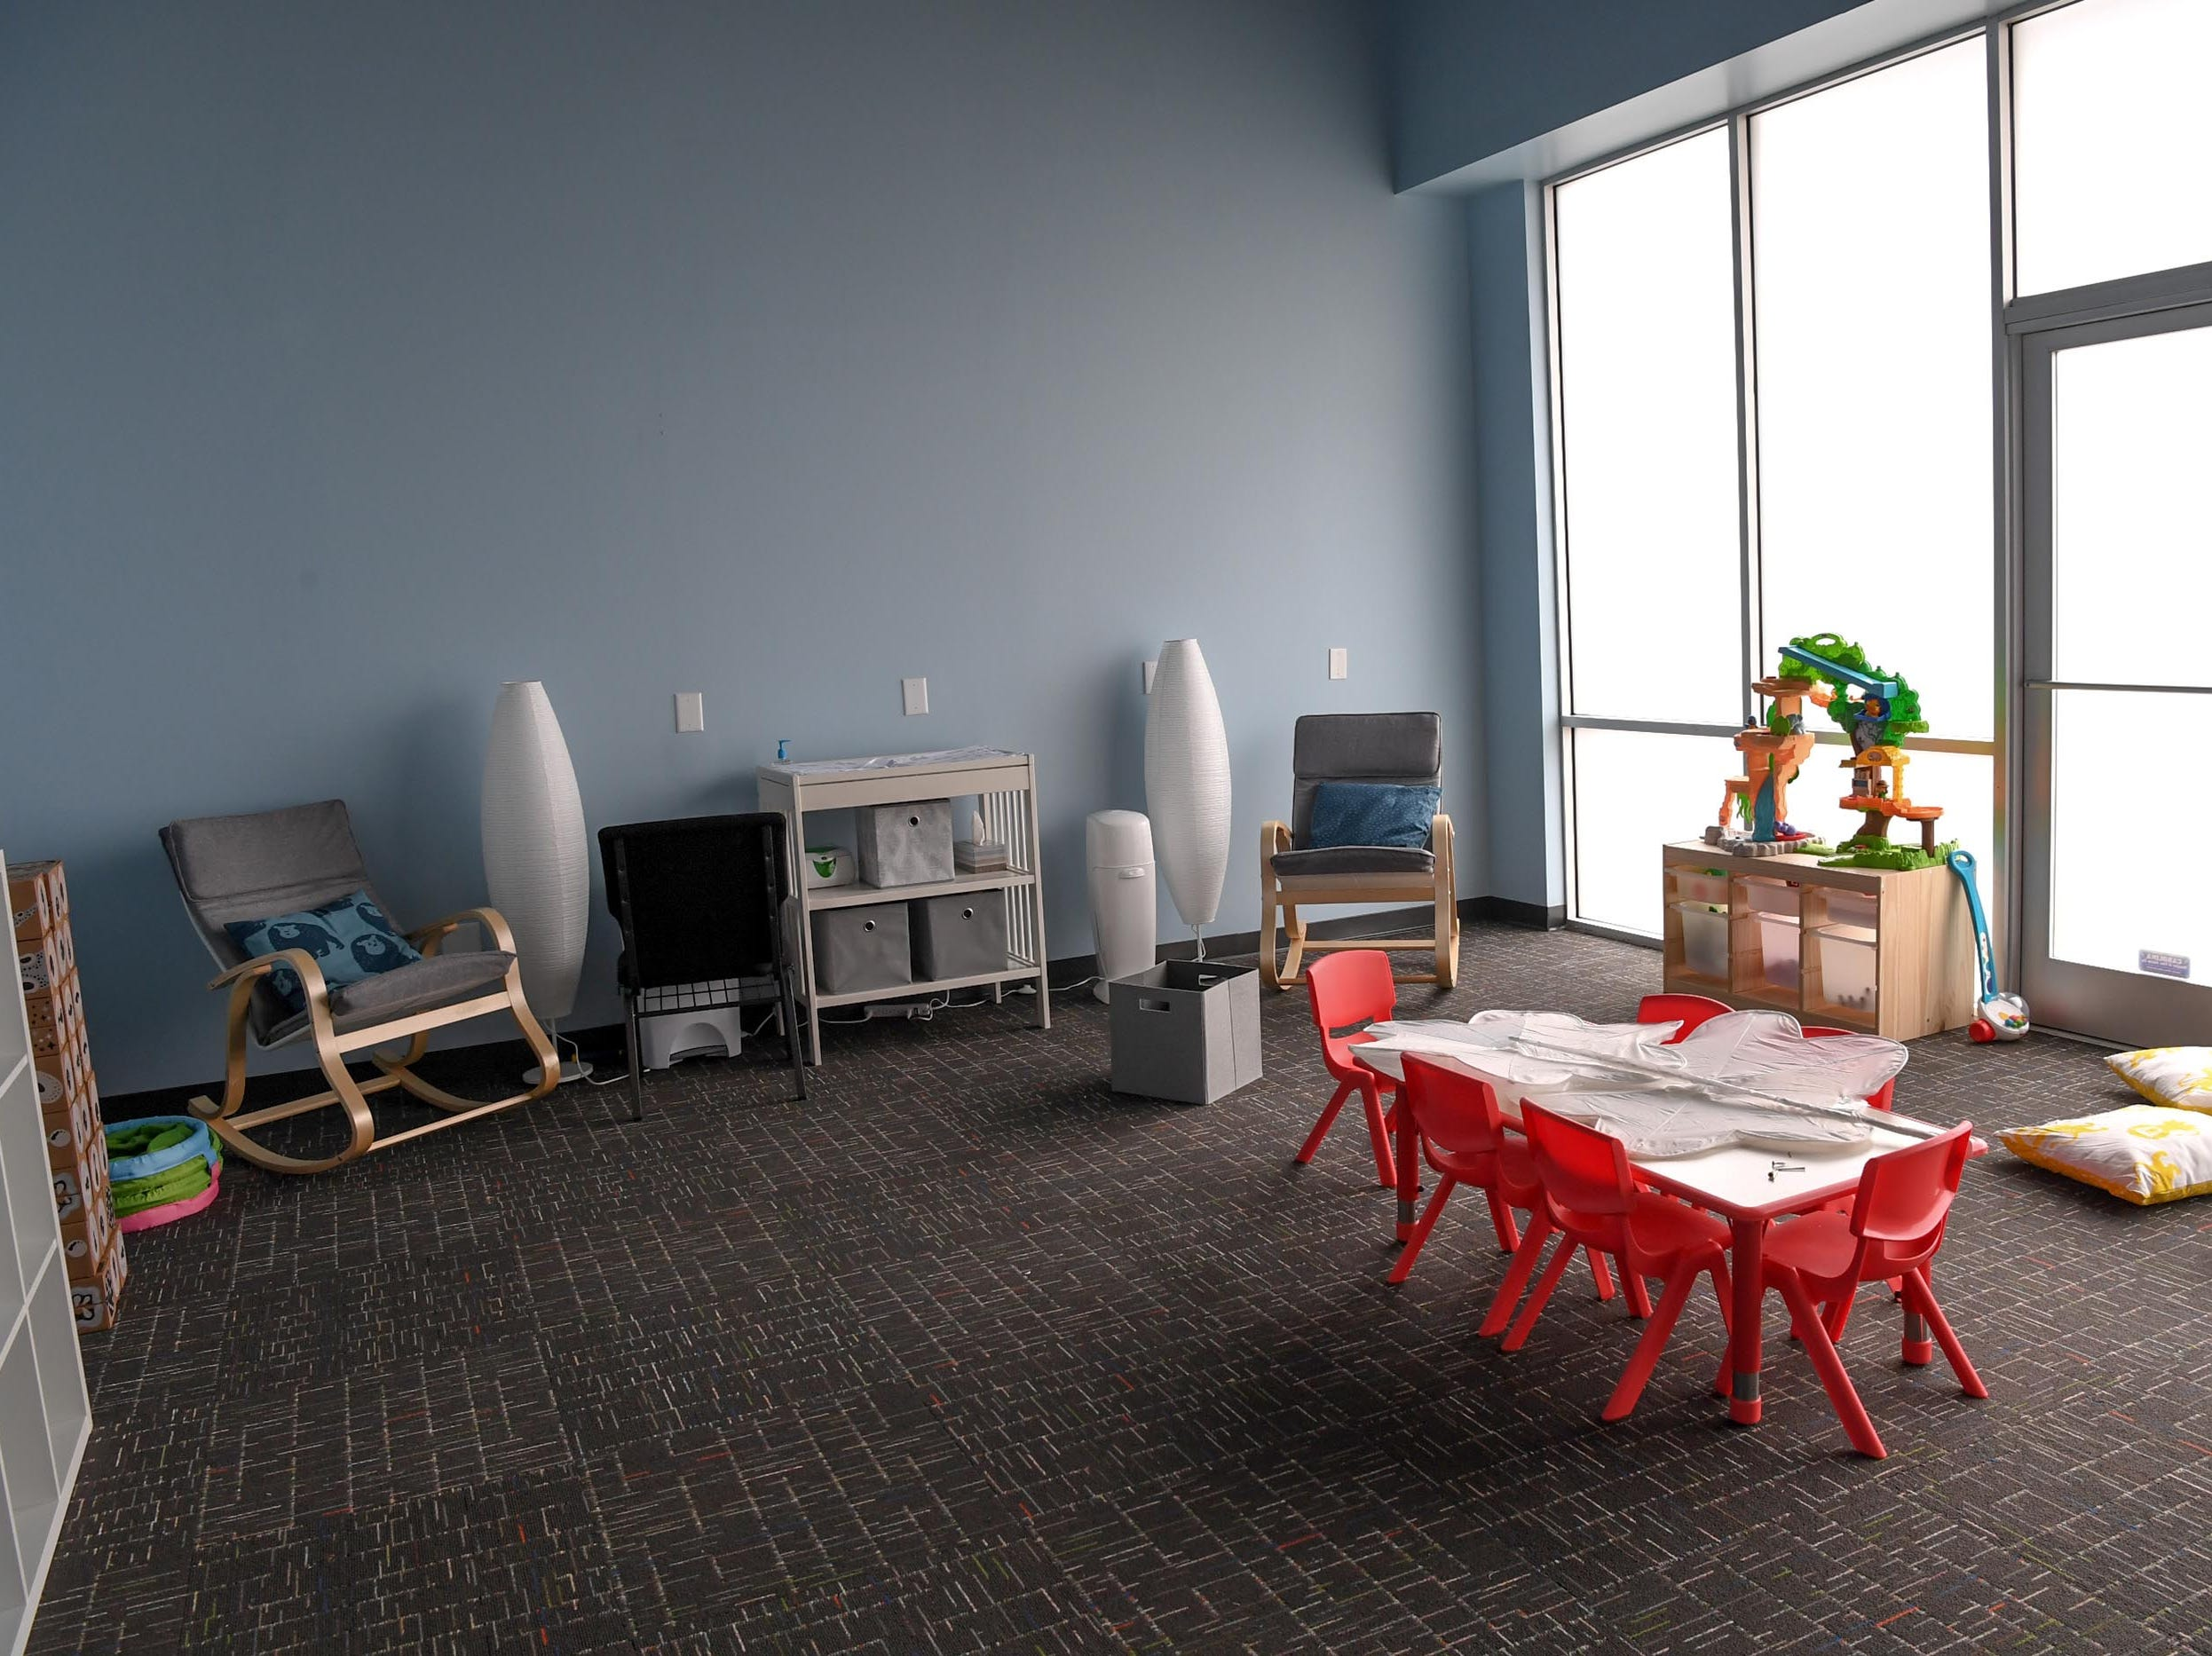 A children's room inside Second Chance Church in Anderson. The church holds its first service on January 27.